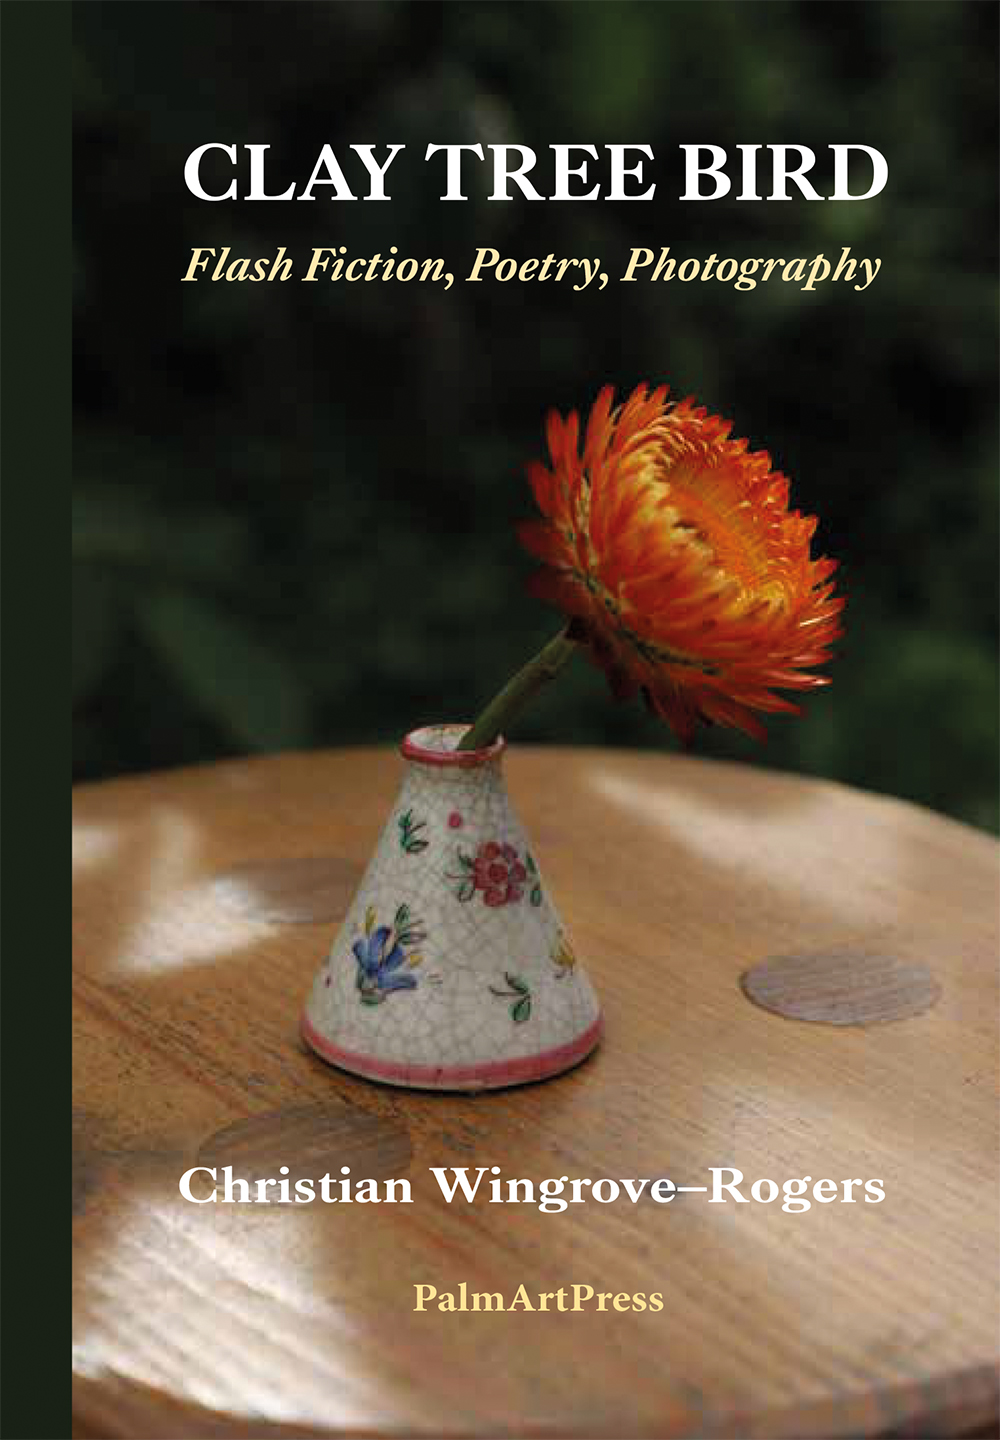 CLAY TREE BIRD: Flash Fiction, Poetry, Photography